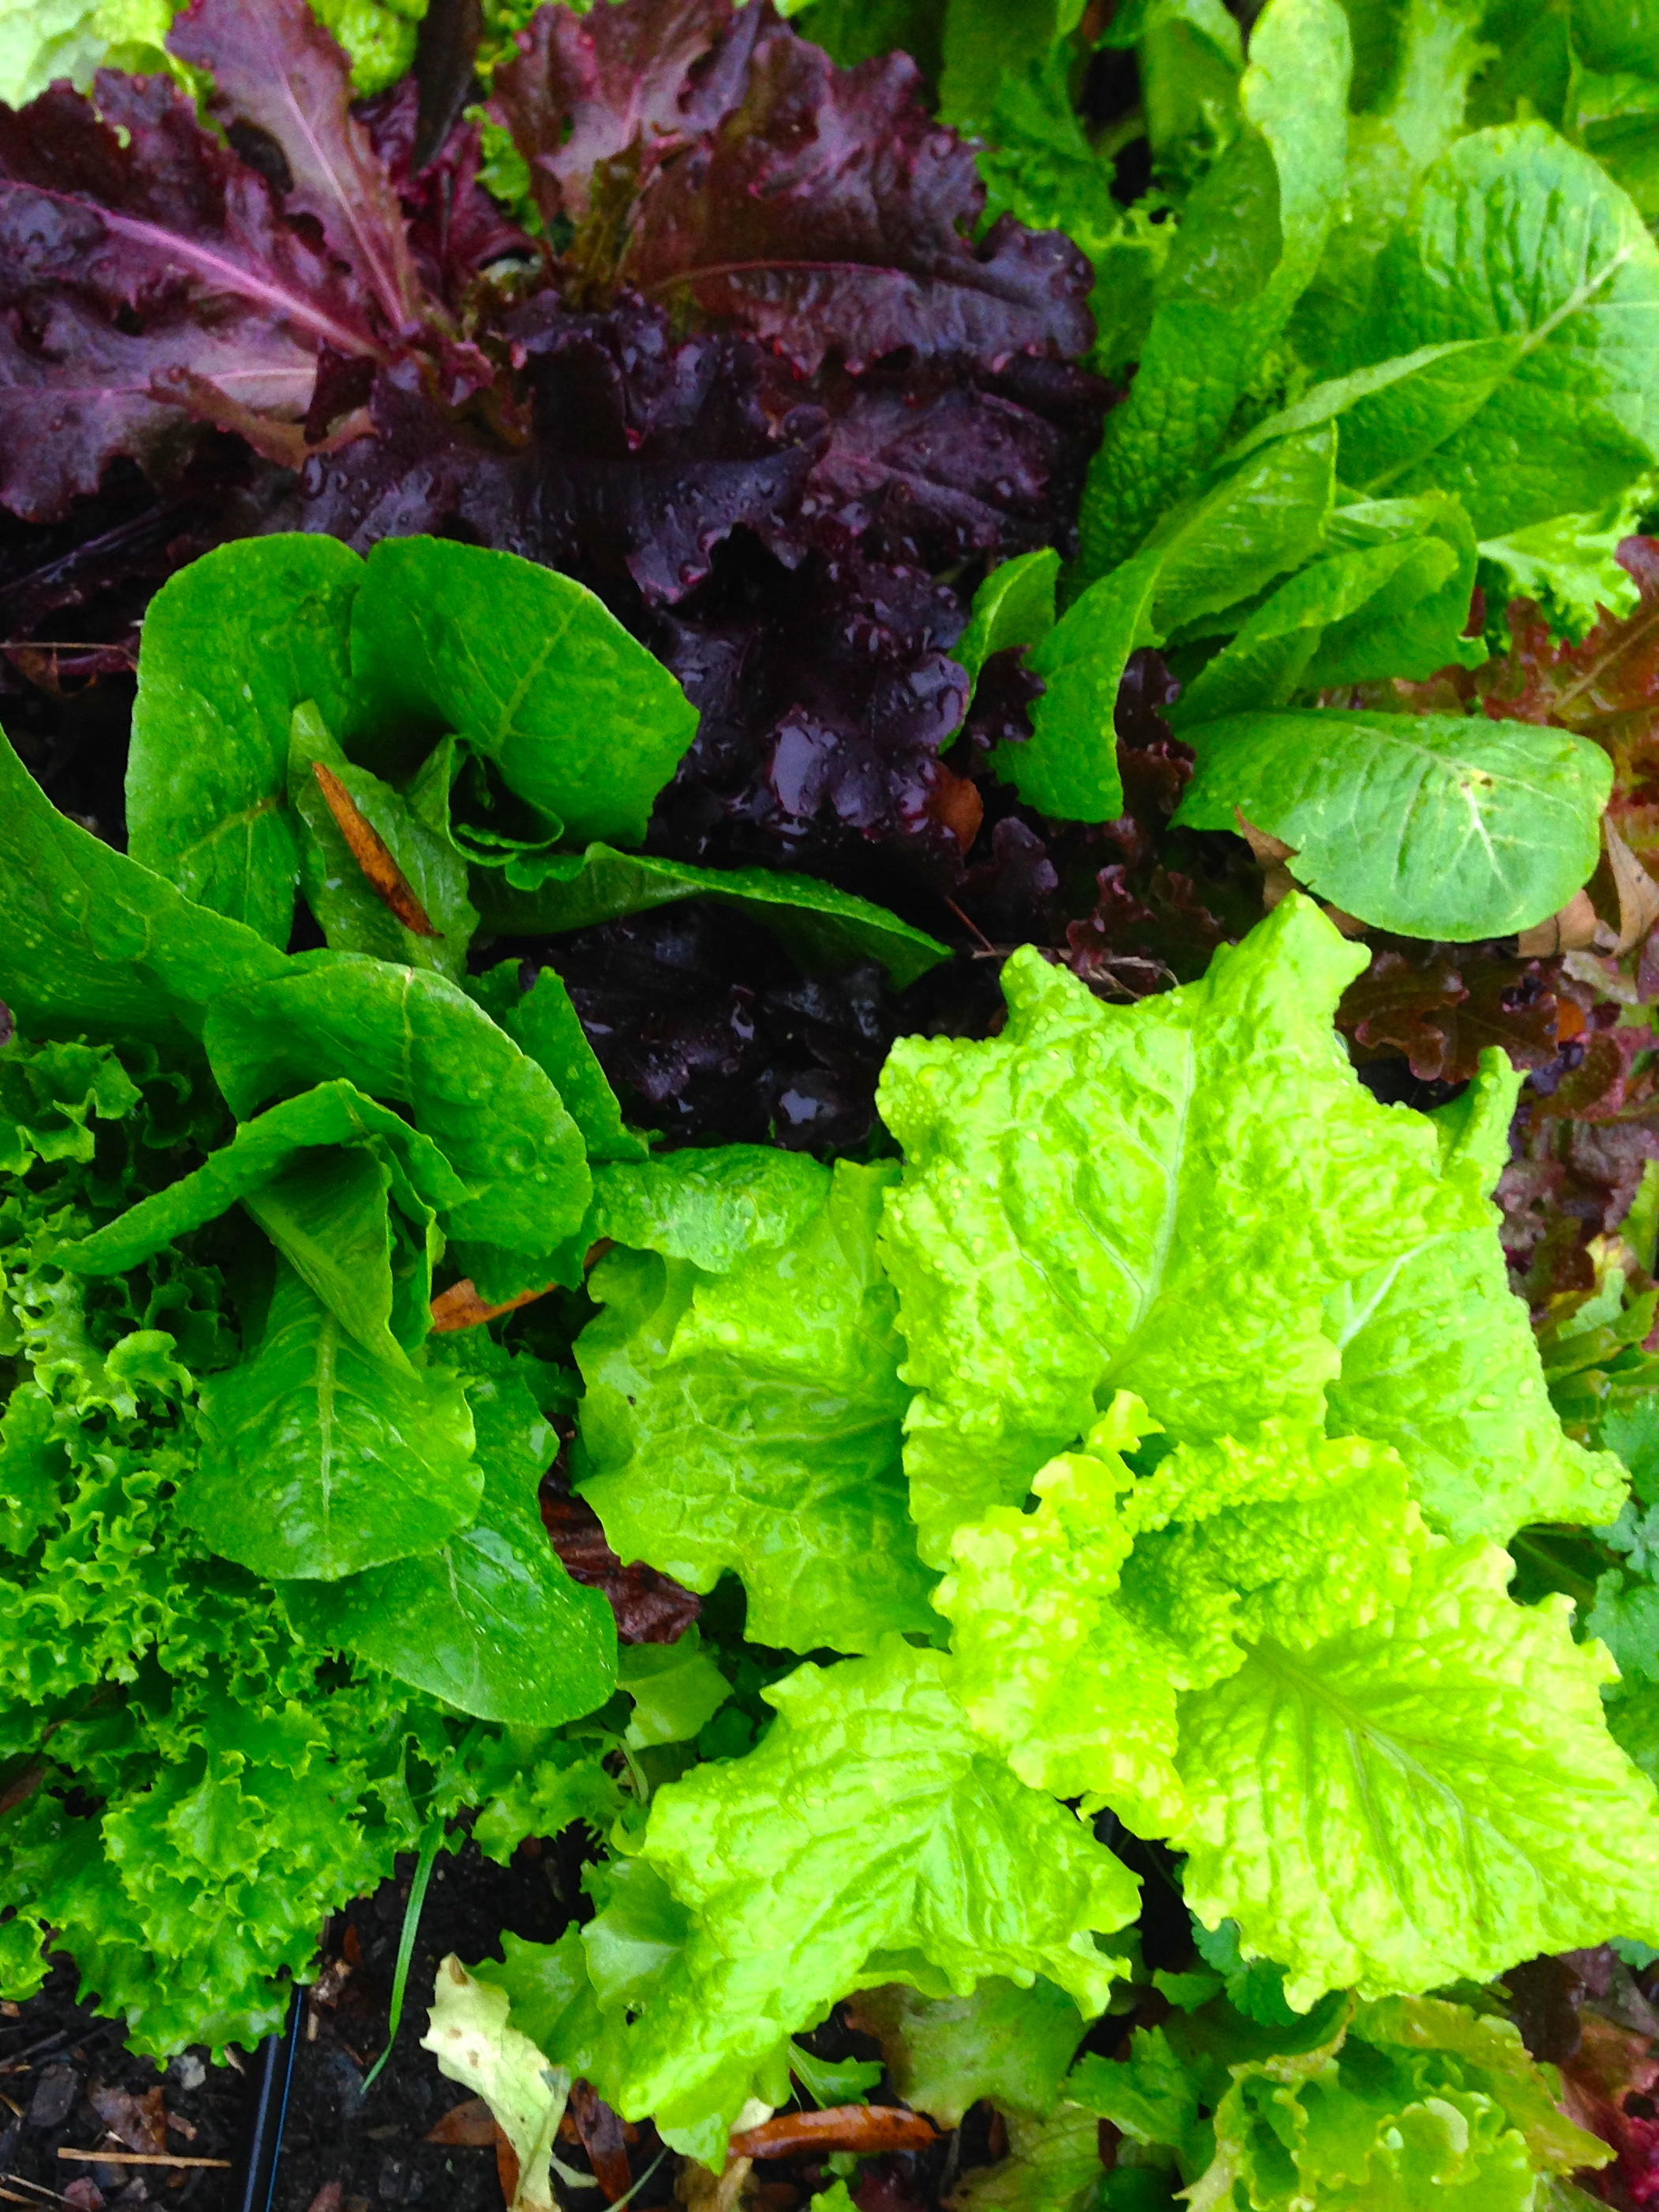 """Here is a sampling of some of the lettuces from one of our """"salad mix"""" rows. You get a nice sampling of different textures and colors within a row such as this."""